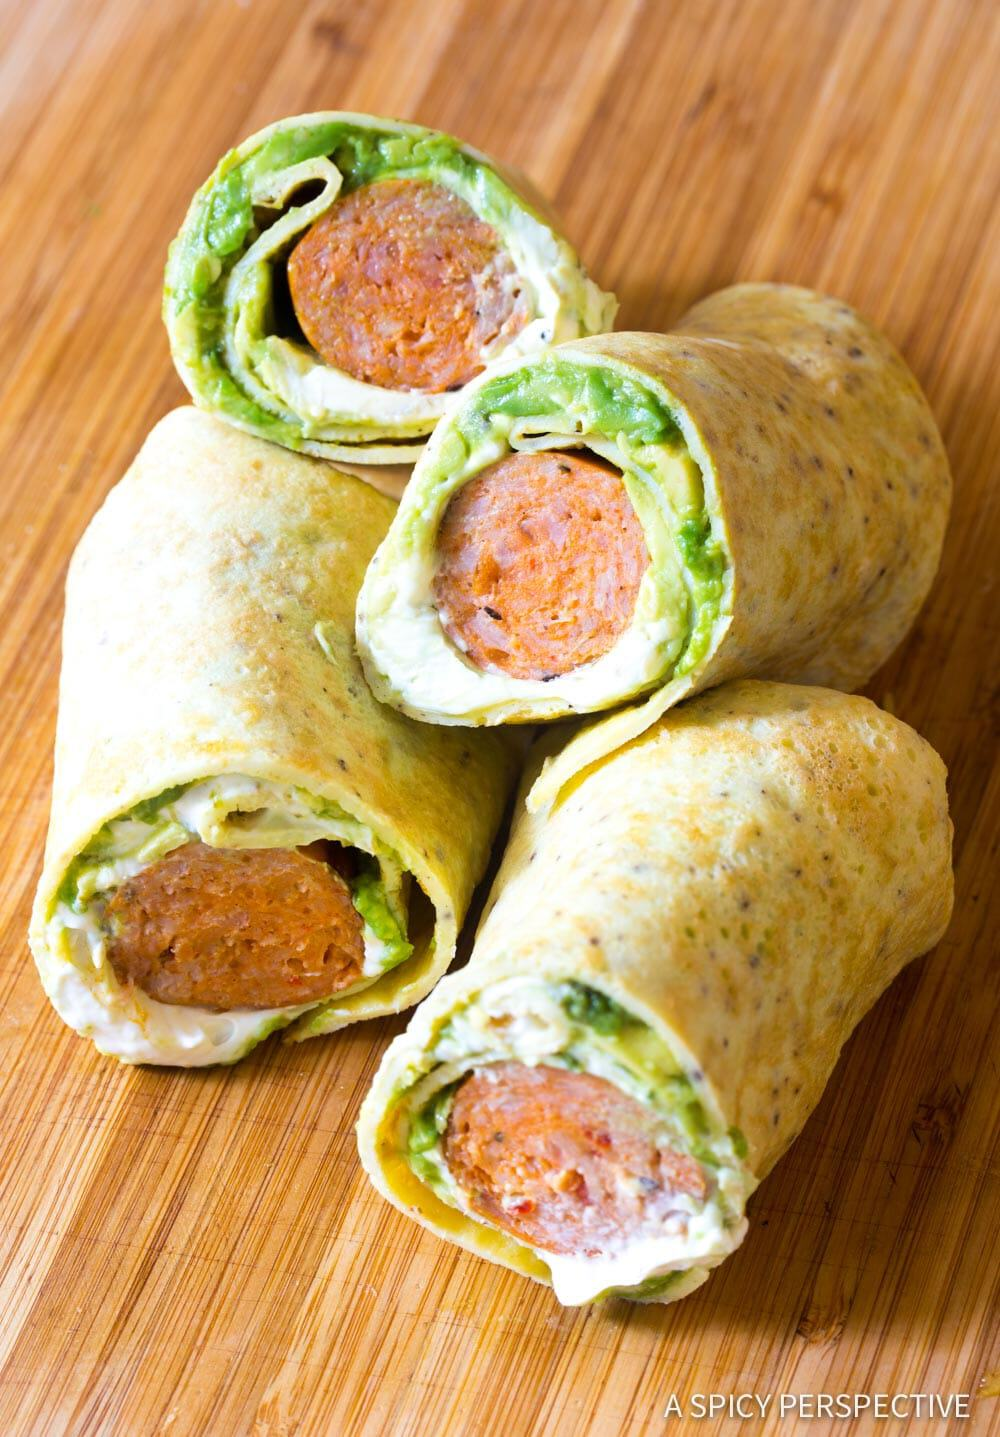 Avocado and chicken sausage egg wraps